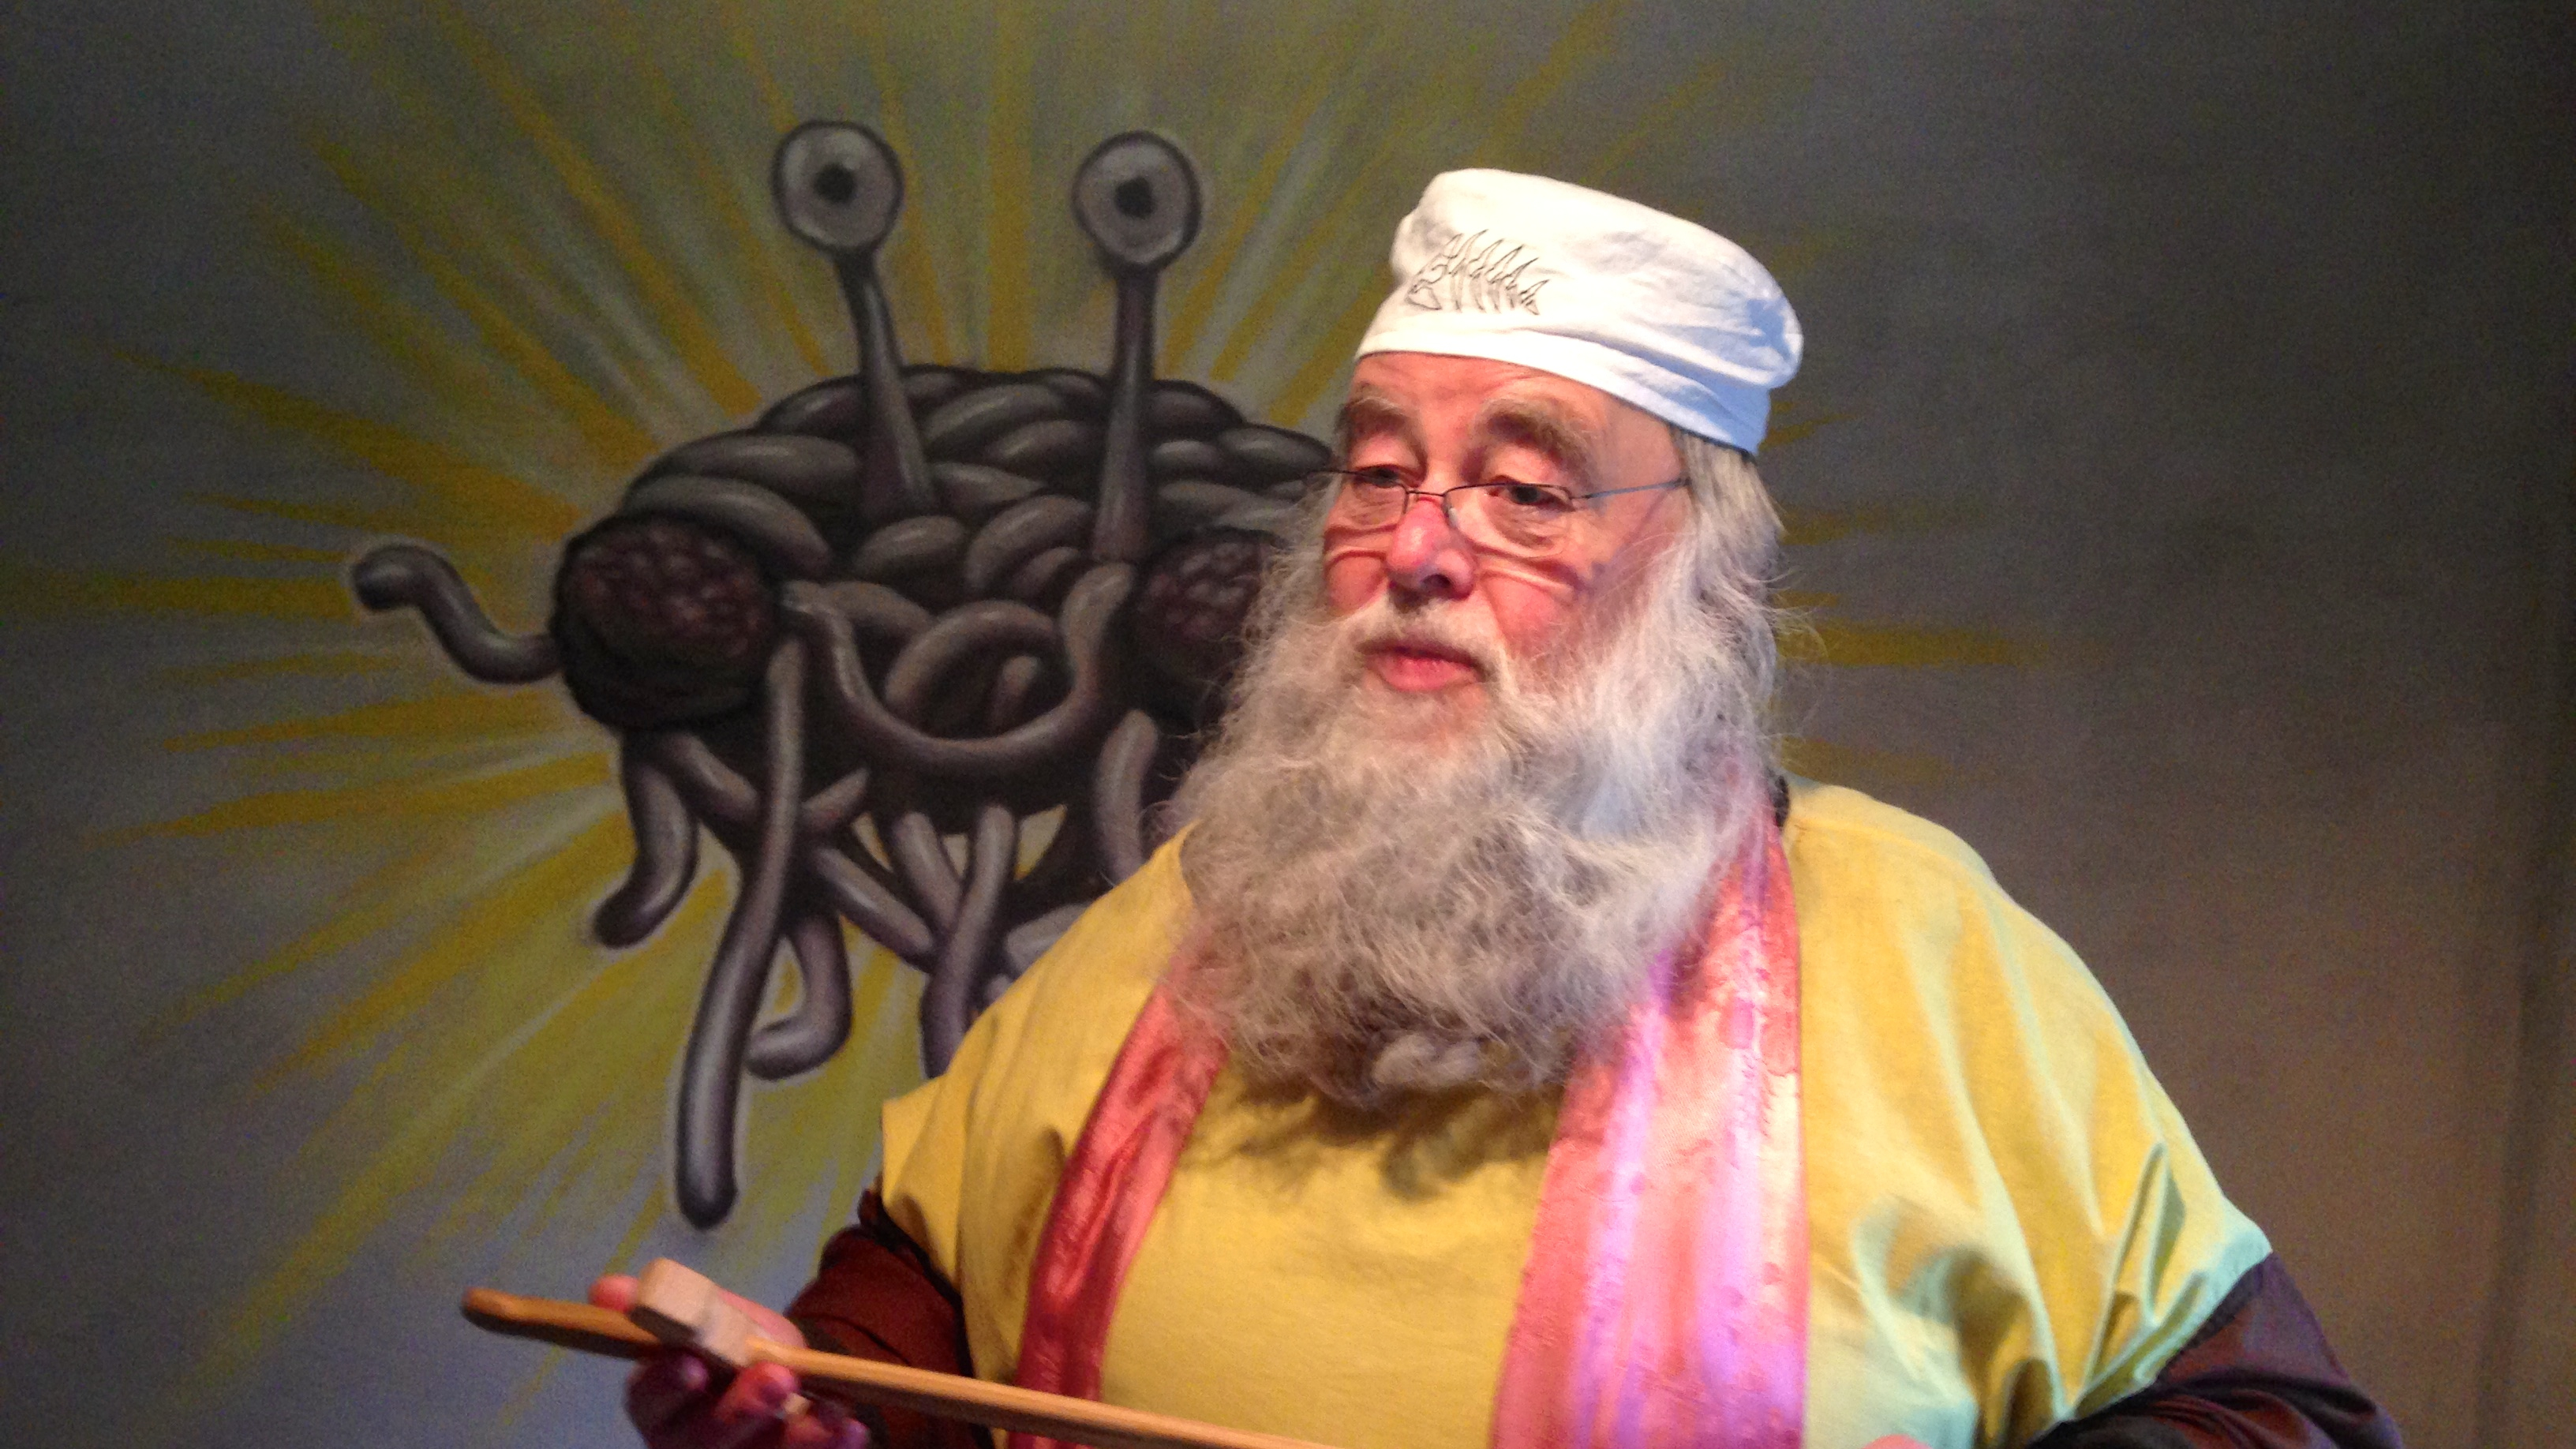 """Rüdiger Weida, aka """"Bruder Spaghettus"""", founded a church dedicated to the worship of """"the Flying Spaghetti Monster"""" in Templin, Germany."""